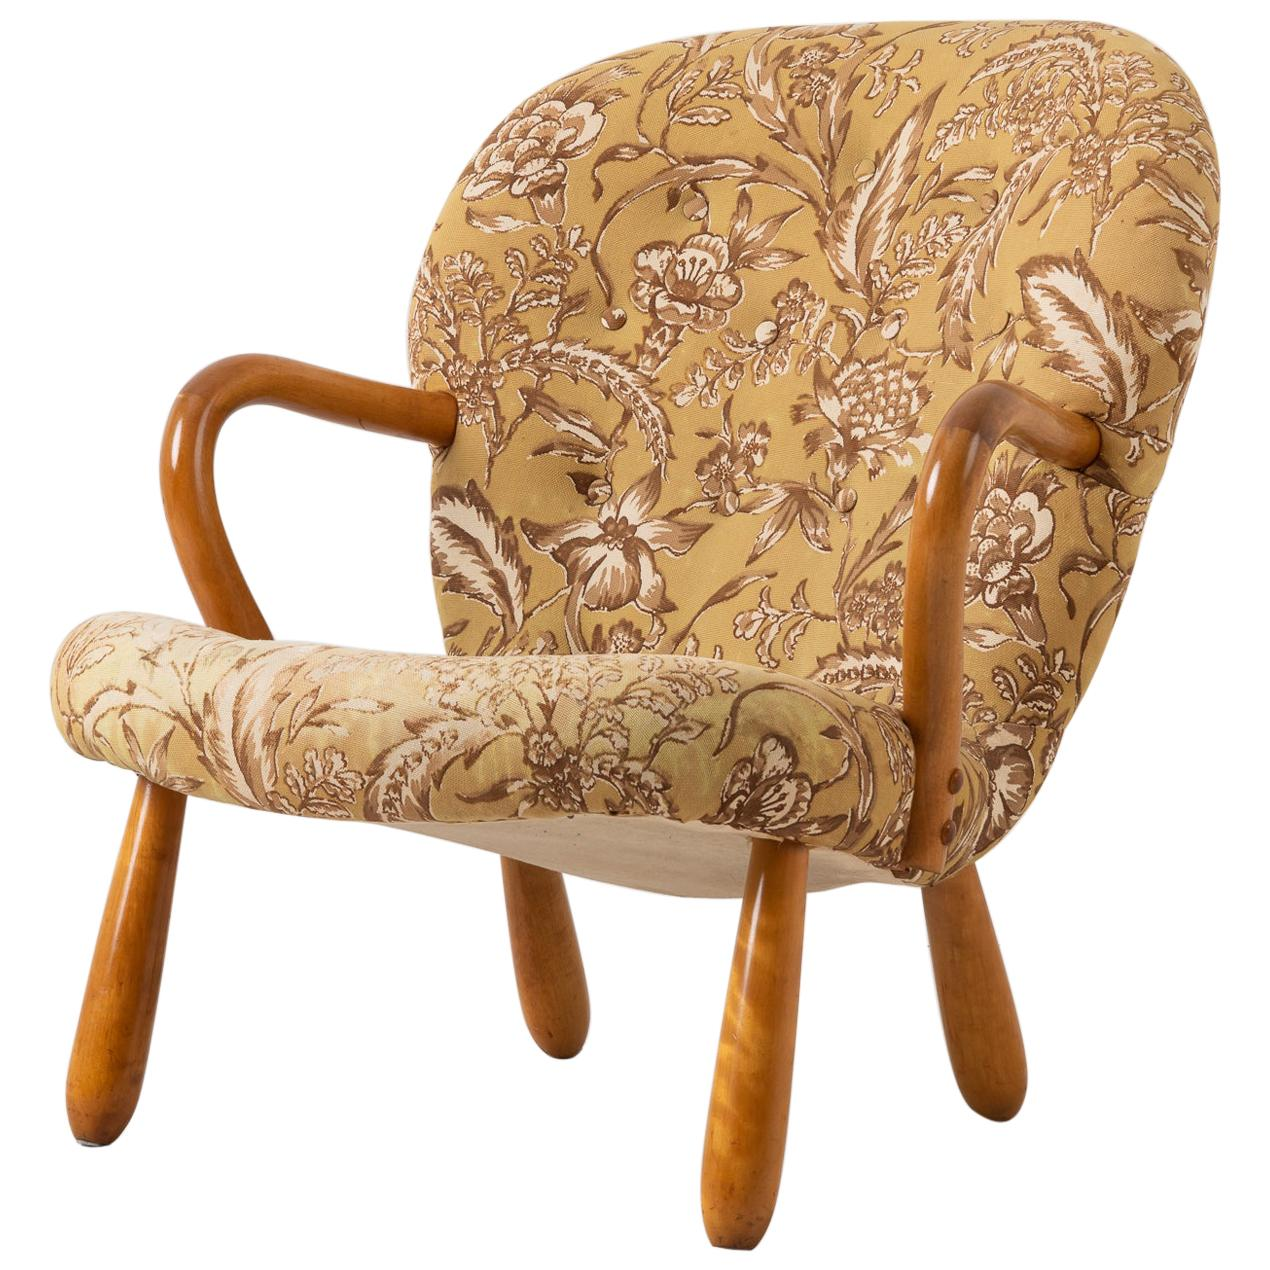 Scandinavian Modern Clam Chair Attributed to Philip Arctander